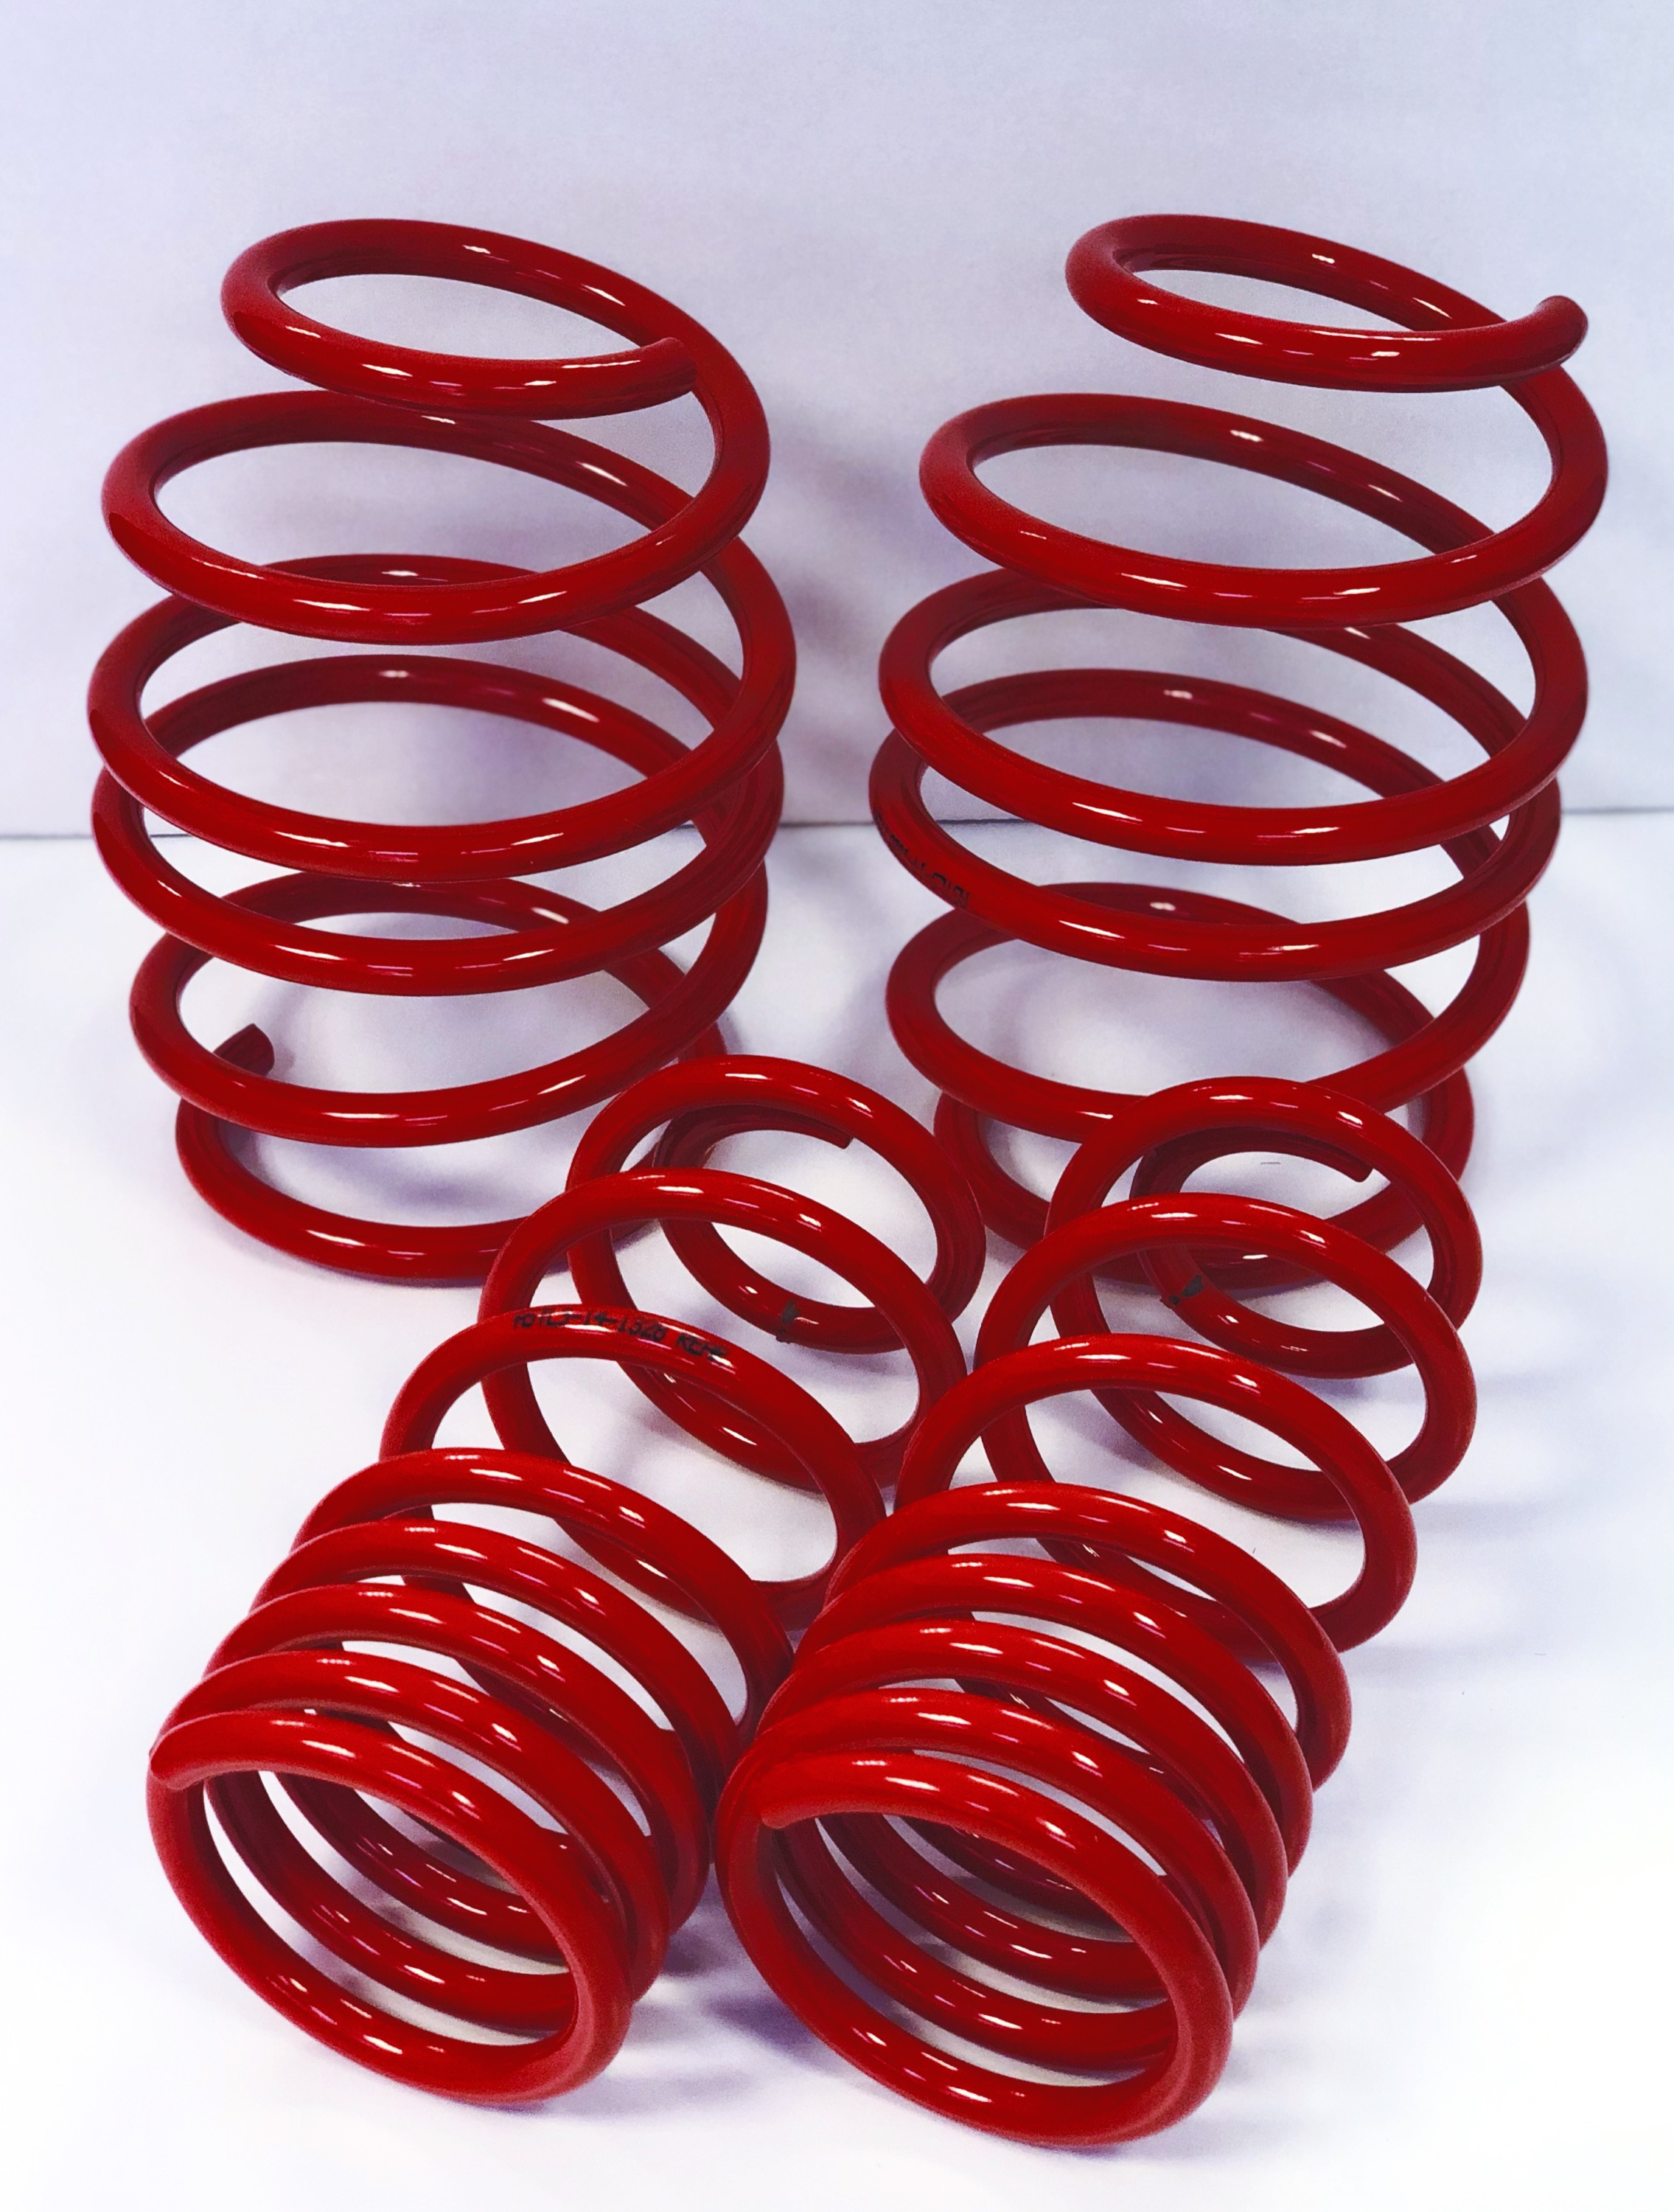 Renault TALISMAN AST Suspension Lowering Springs 25MM